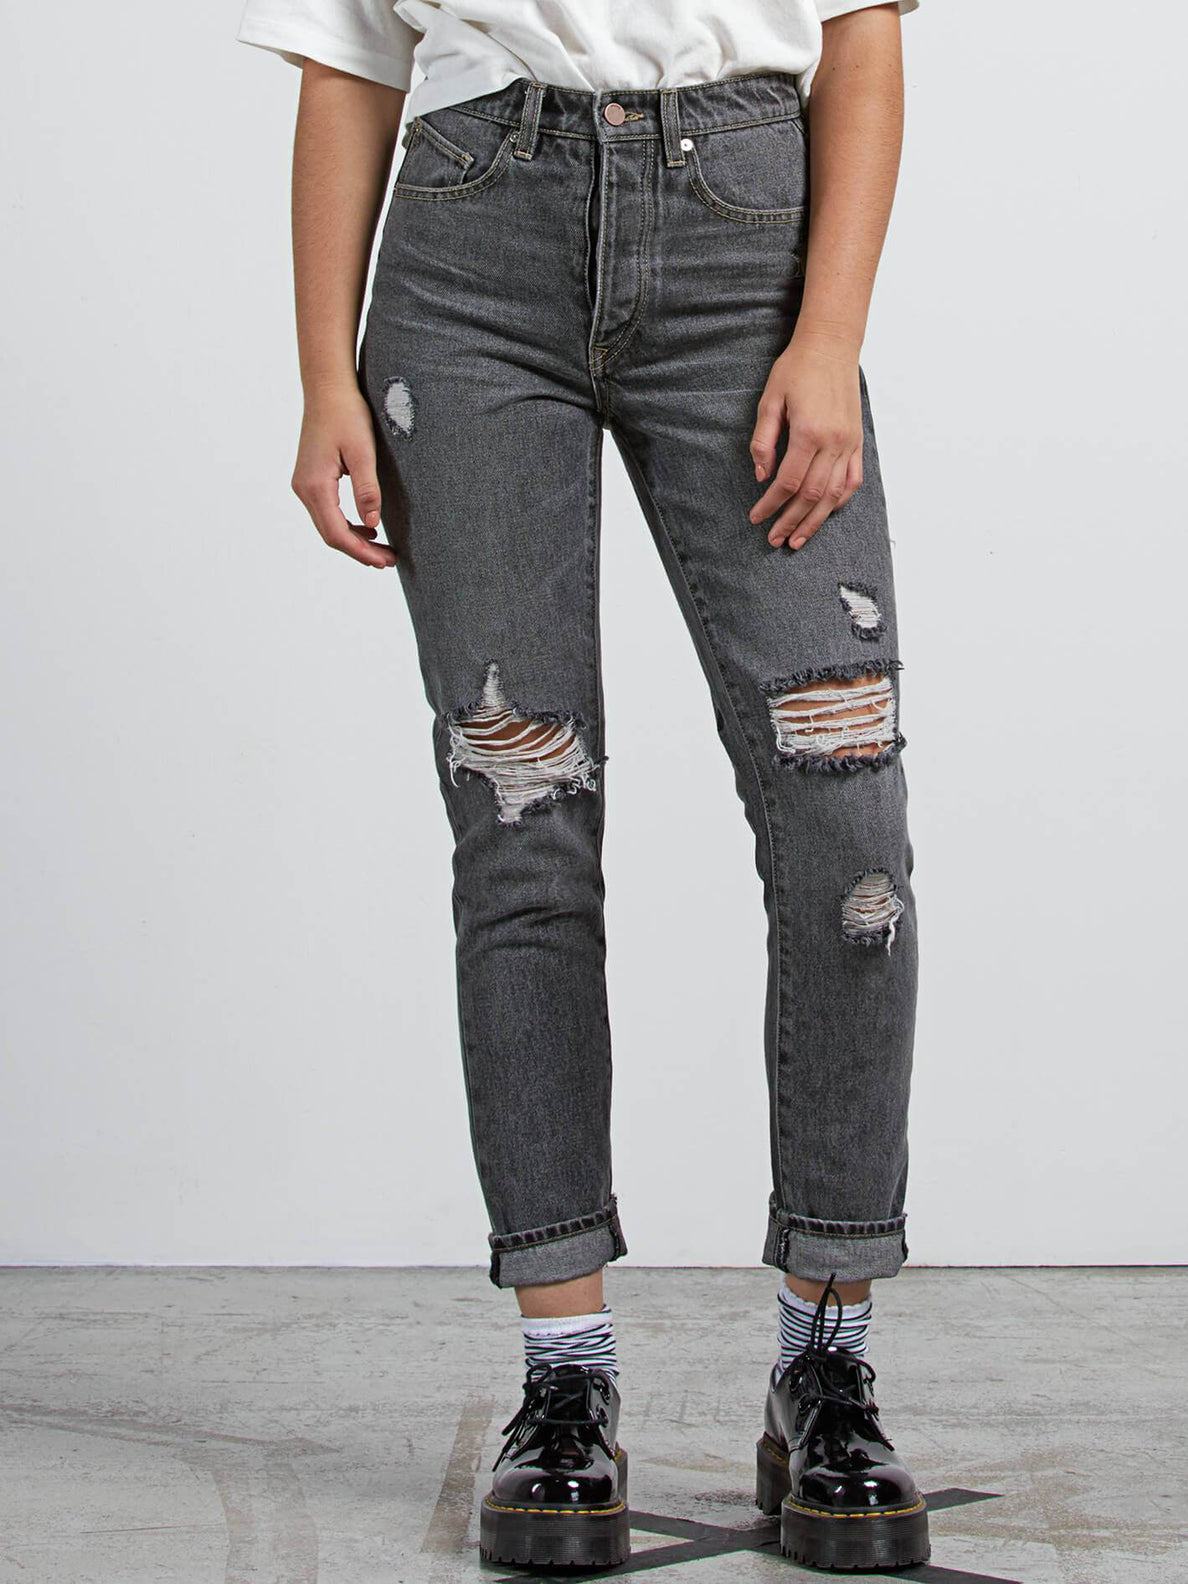 Super Stoned Skinny Jeans In Black Destructo, Front View